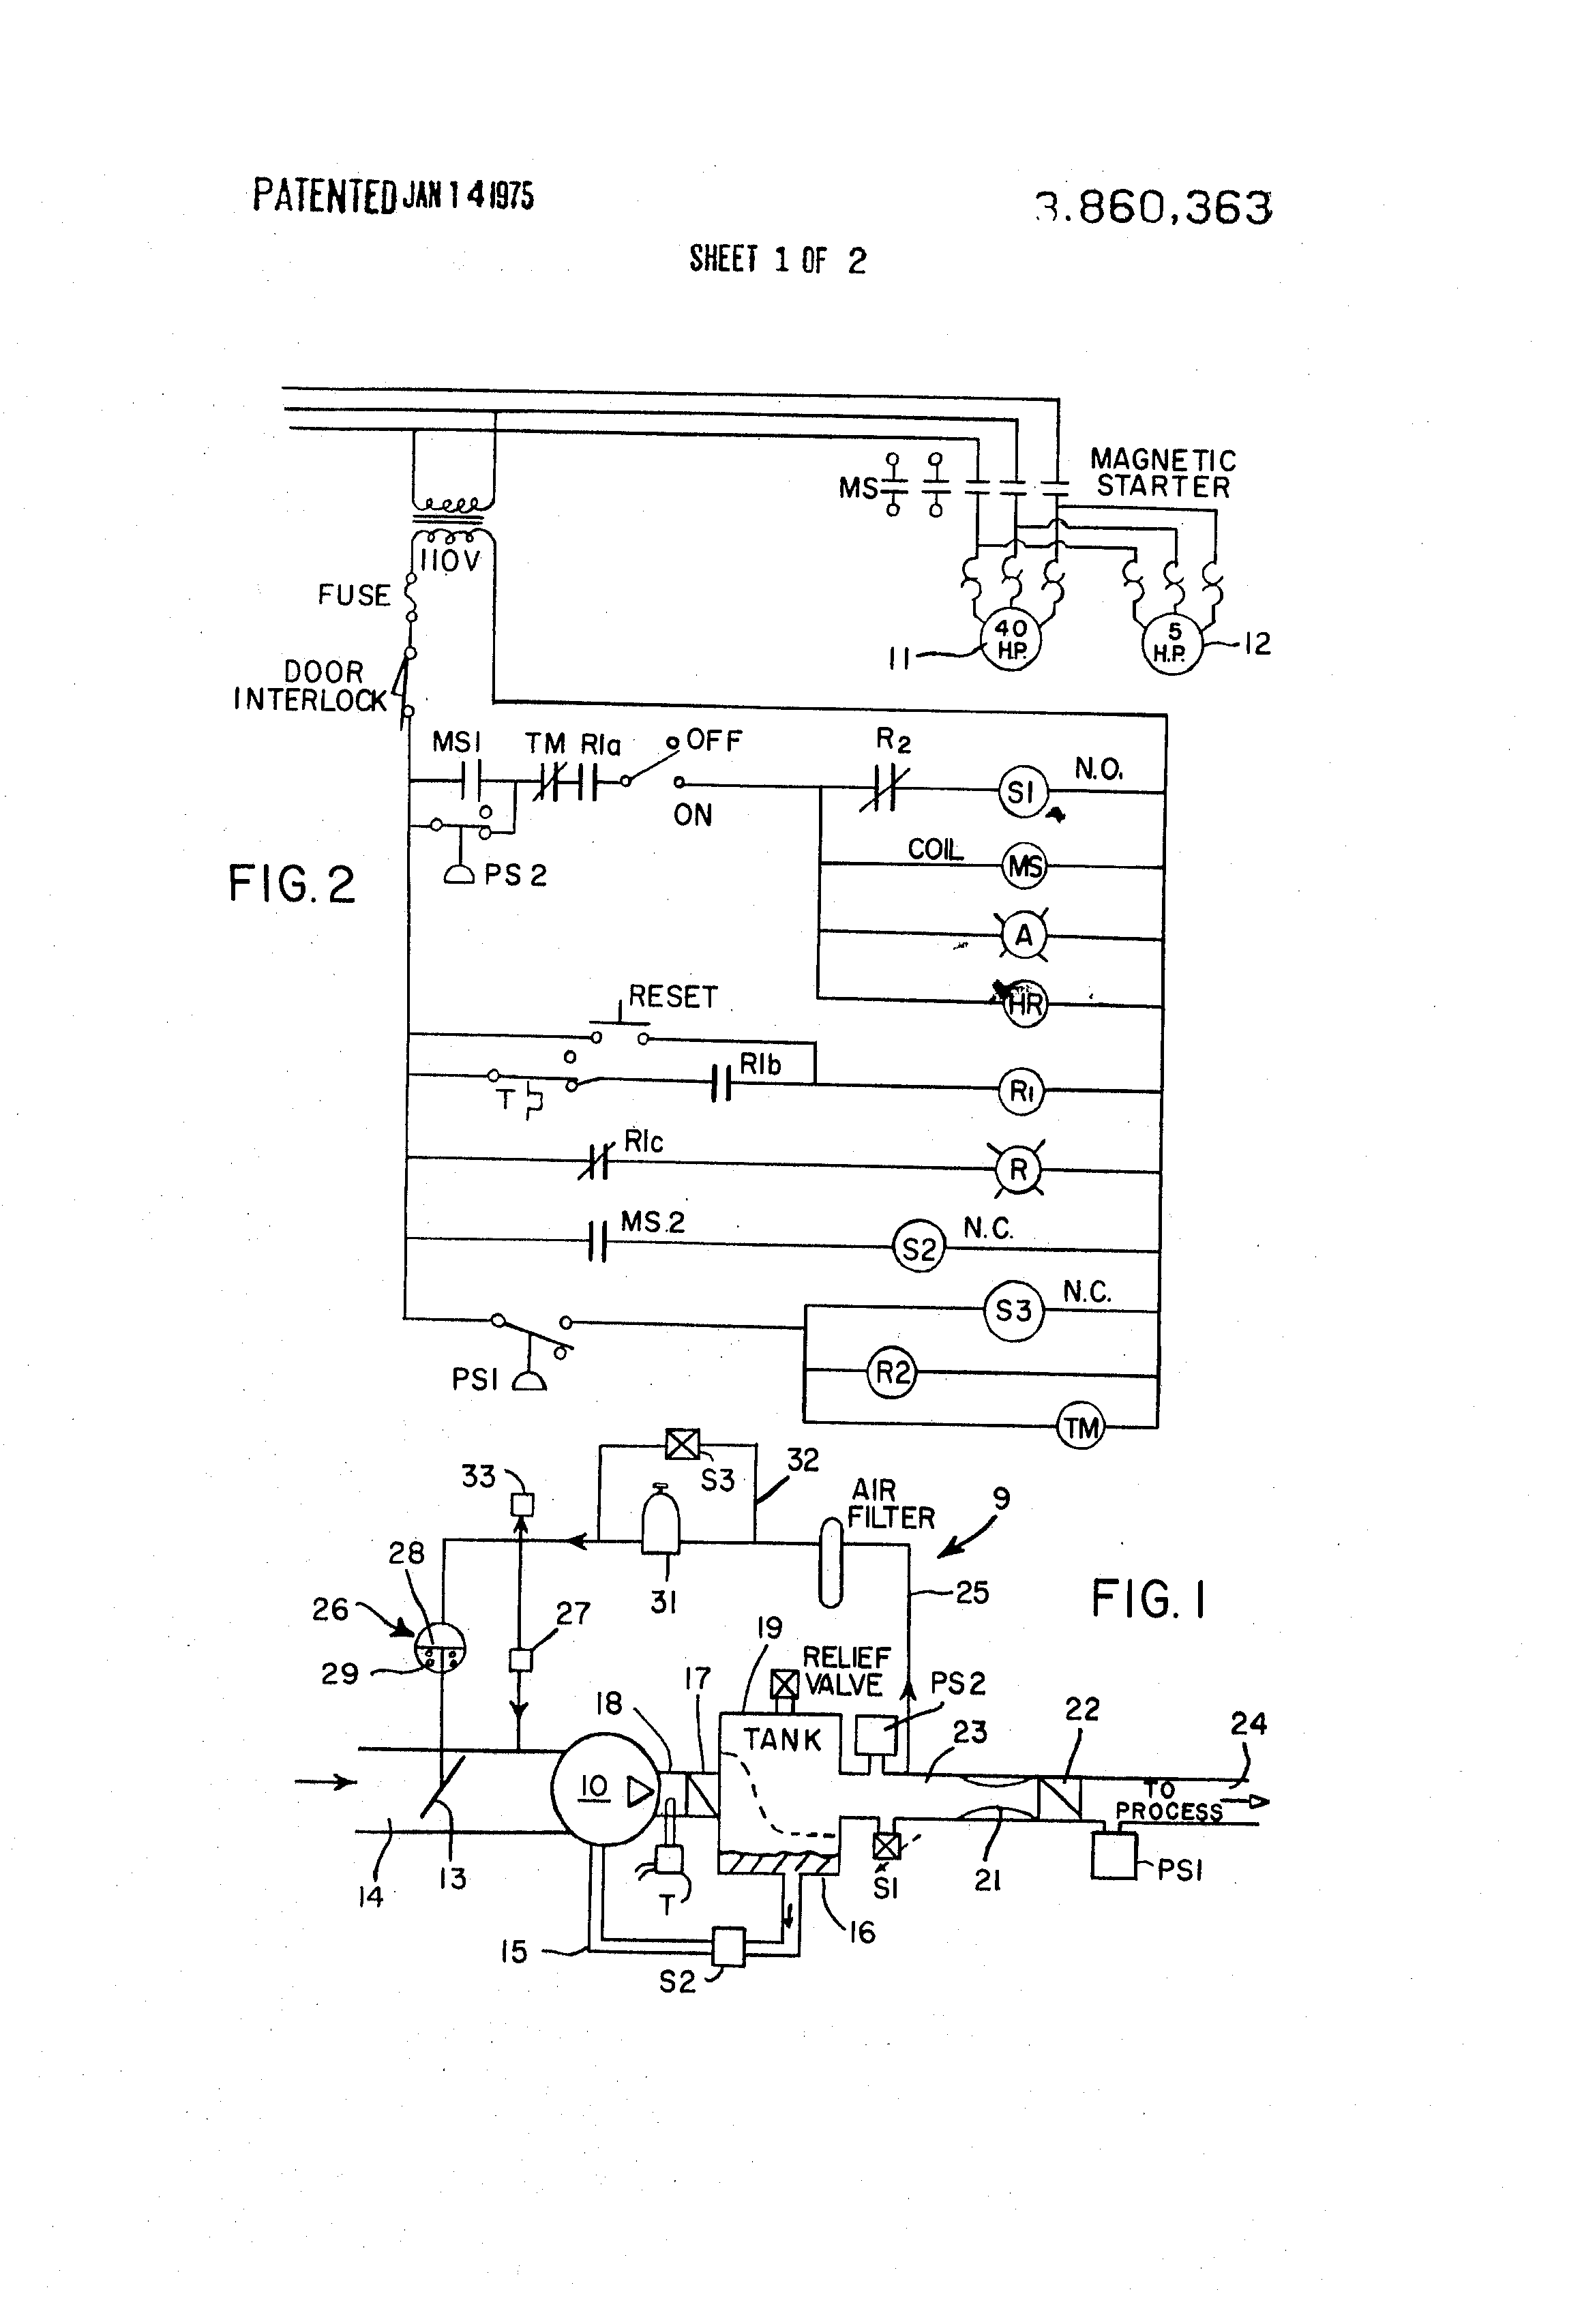 Patent Us3860363 - Rotary Compressor Having Improved Control System